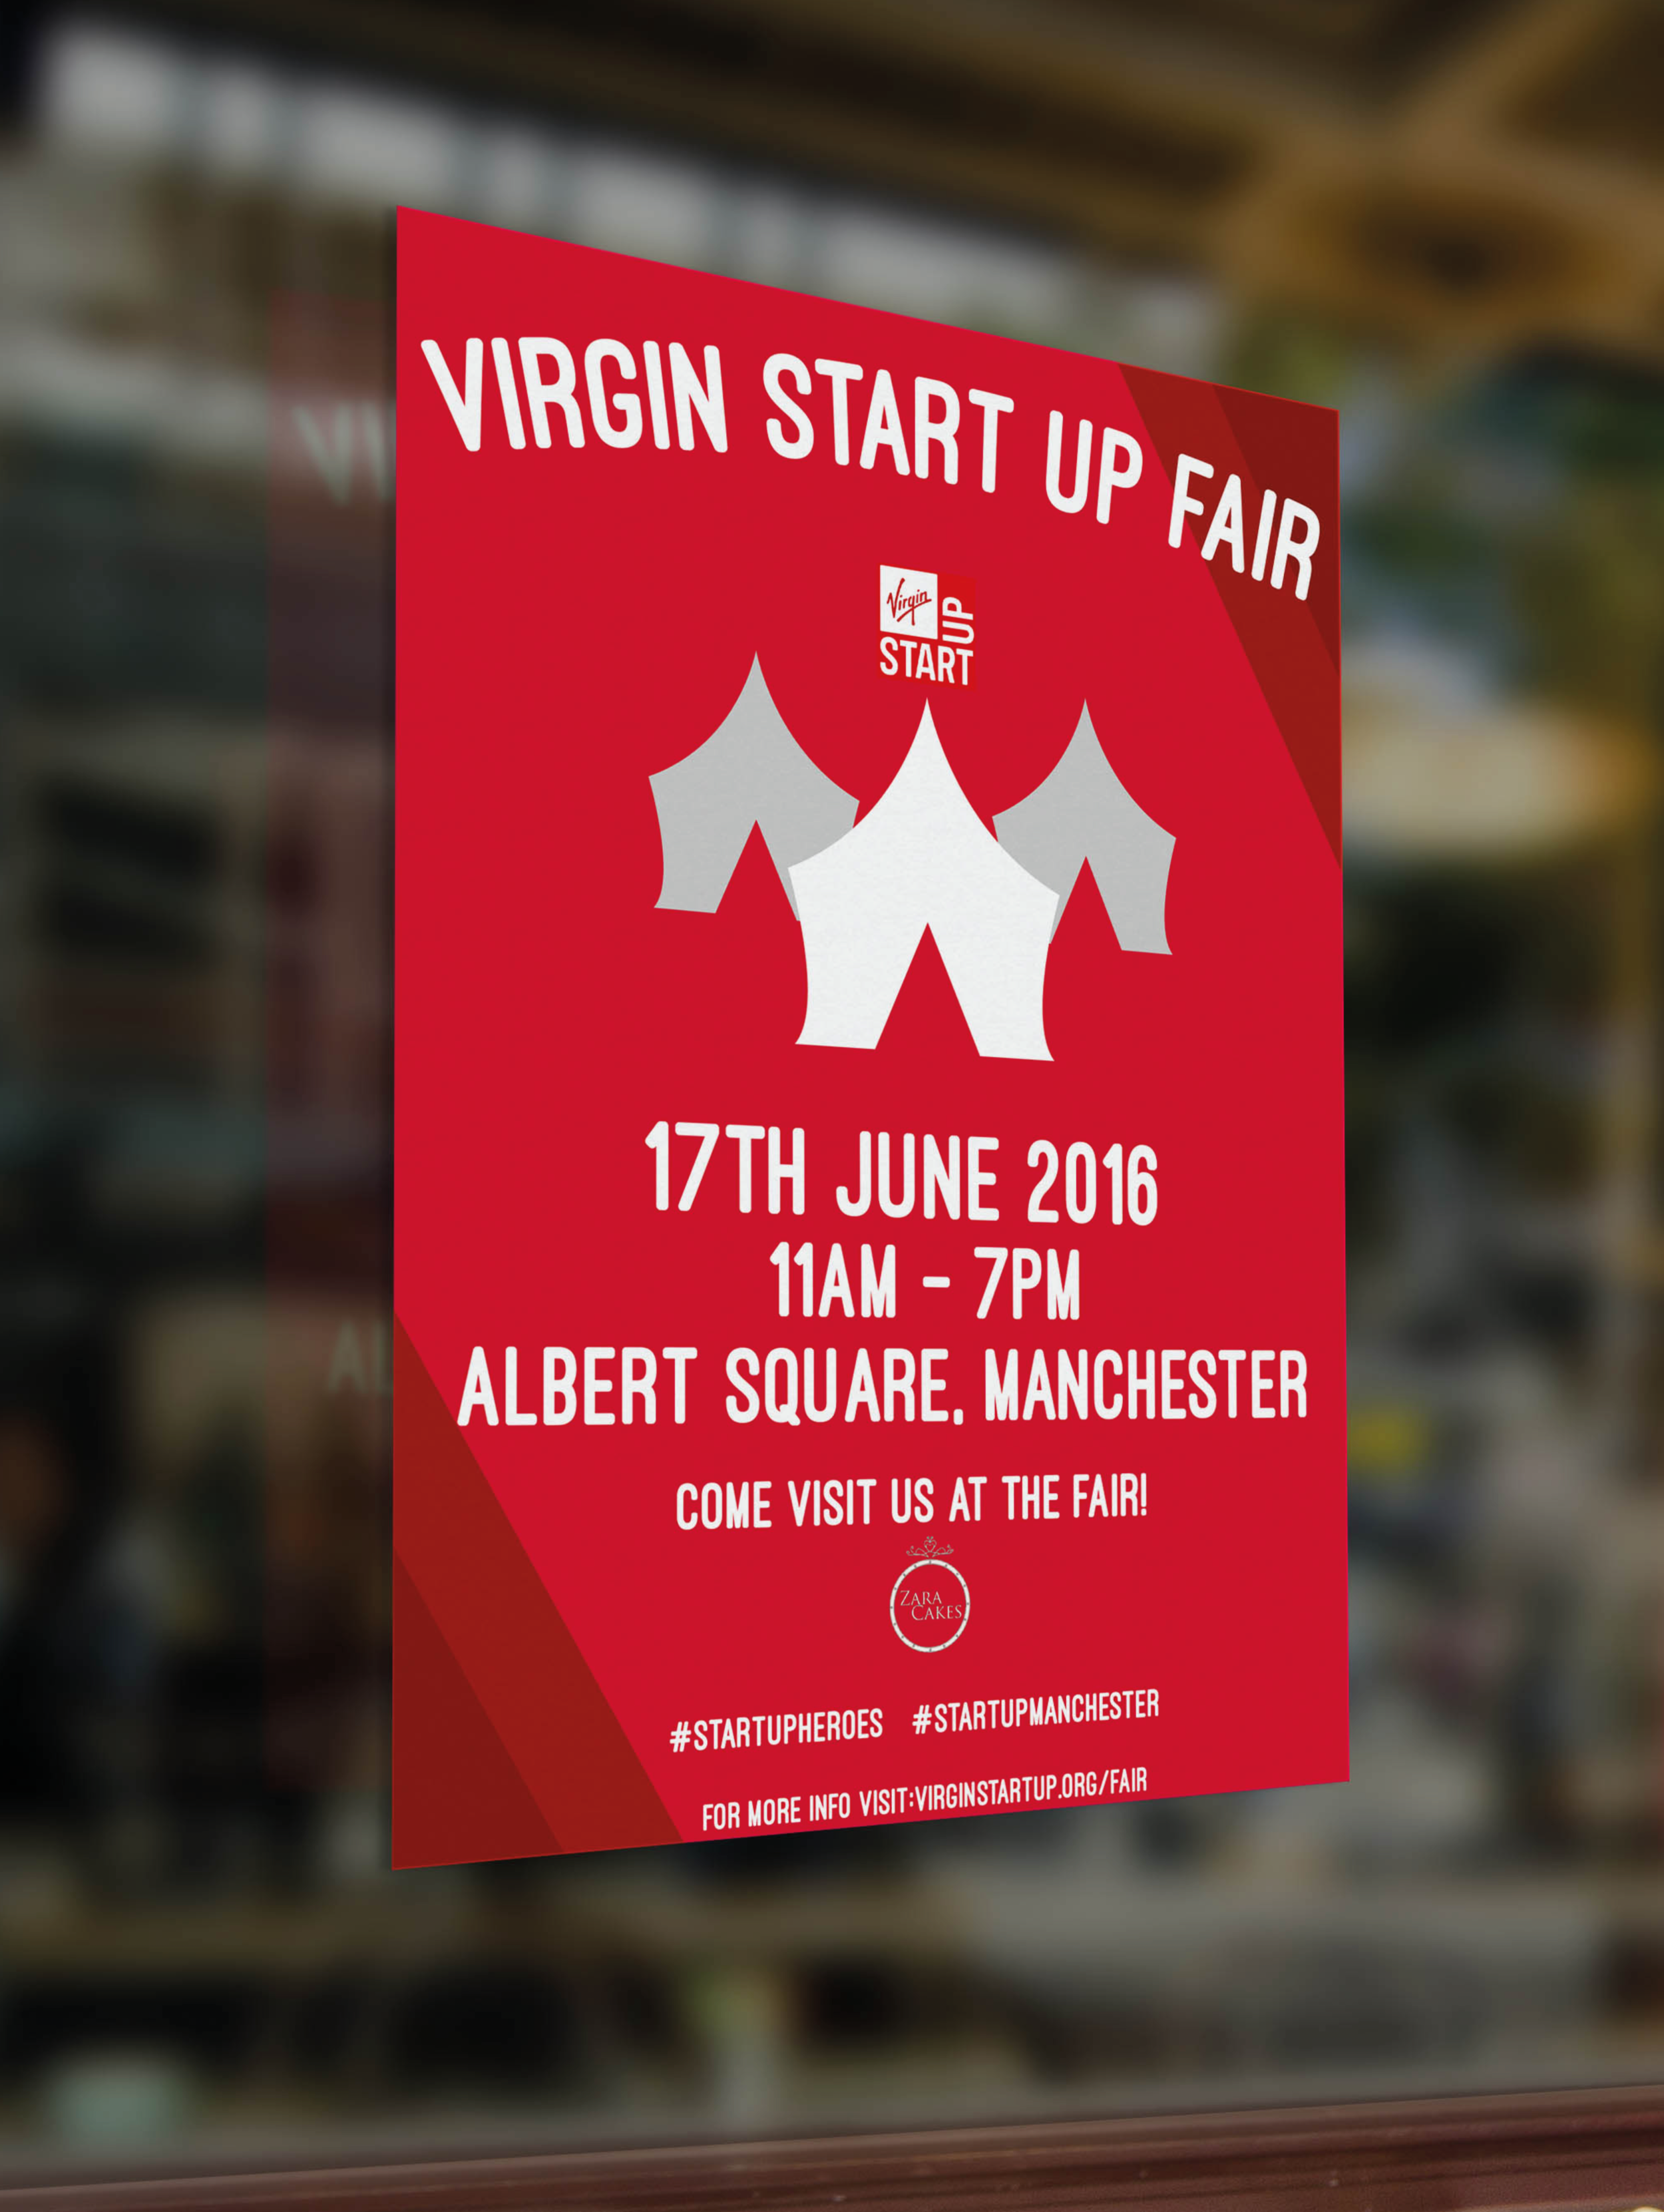 VirginStart Up - Award winning AUB 24 hour brief set by Virgin. The Virgin Start Up Fair is an annual event that runs across major cities in the UK to celebrate Virgin Start Up businesses.